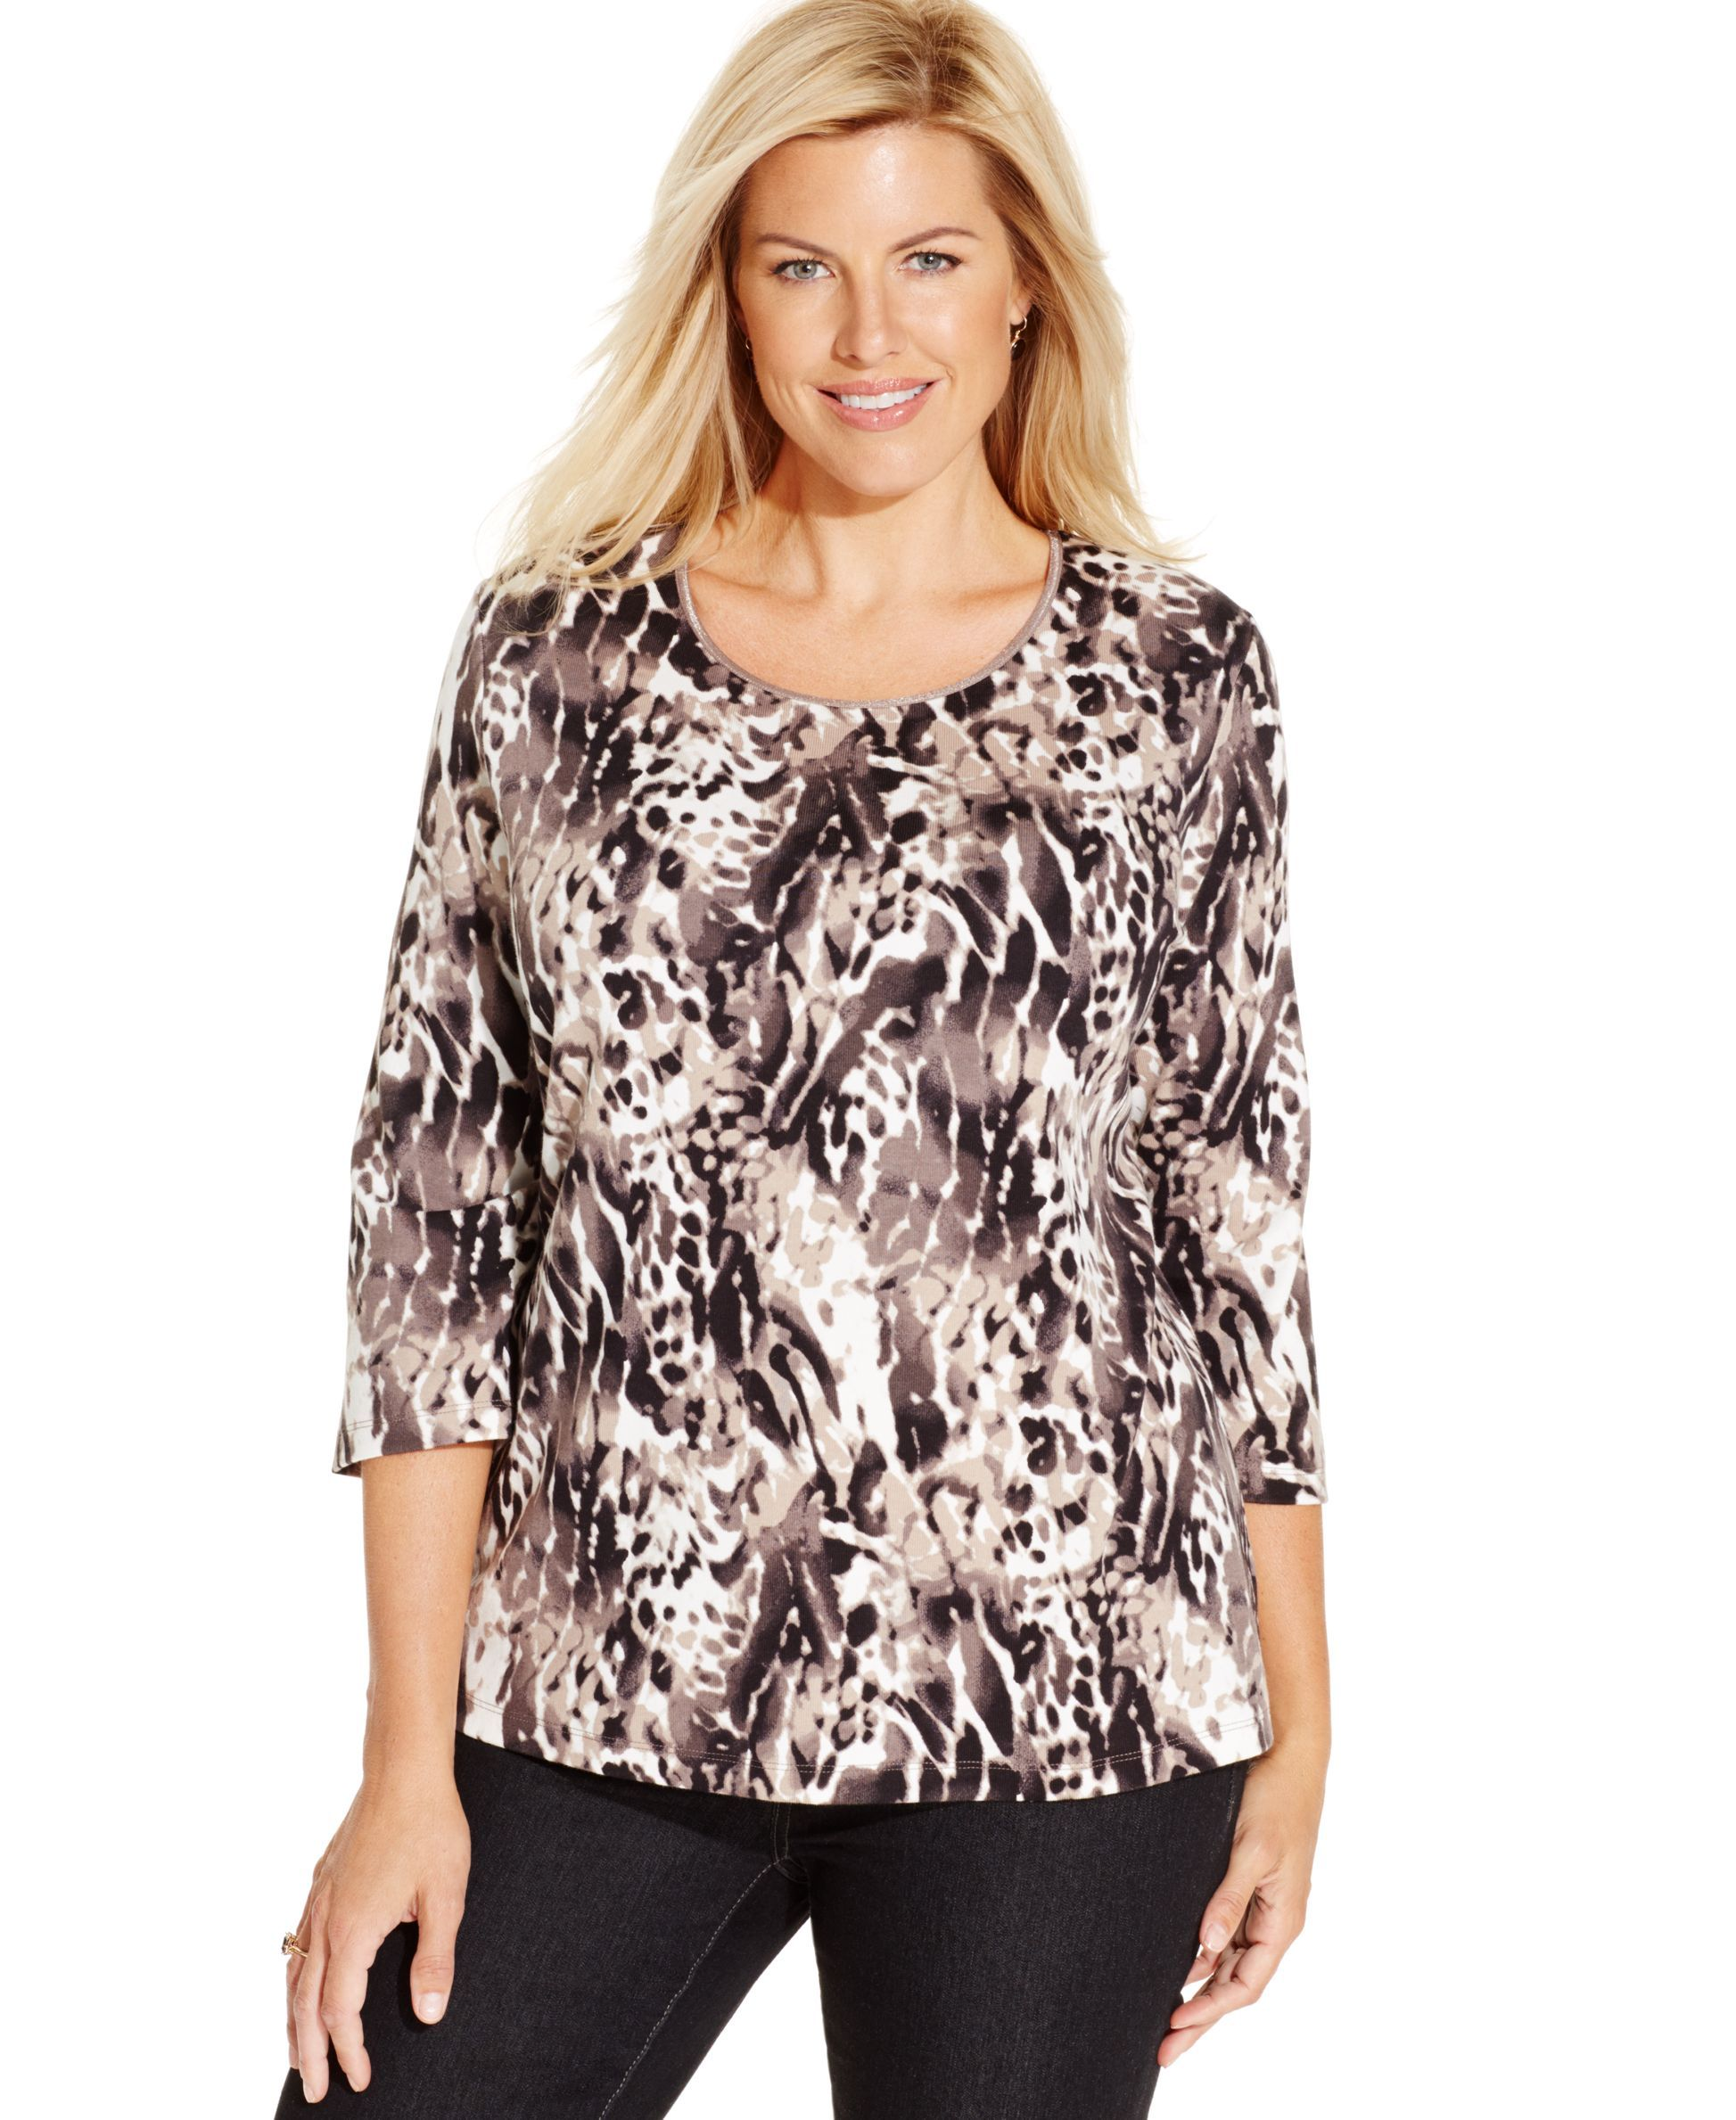 JM Collection Embellished Printed Tunic Top, Only at Macy